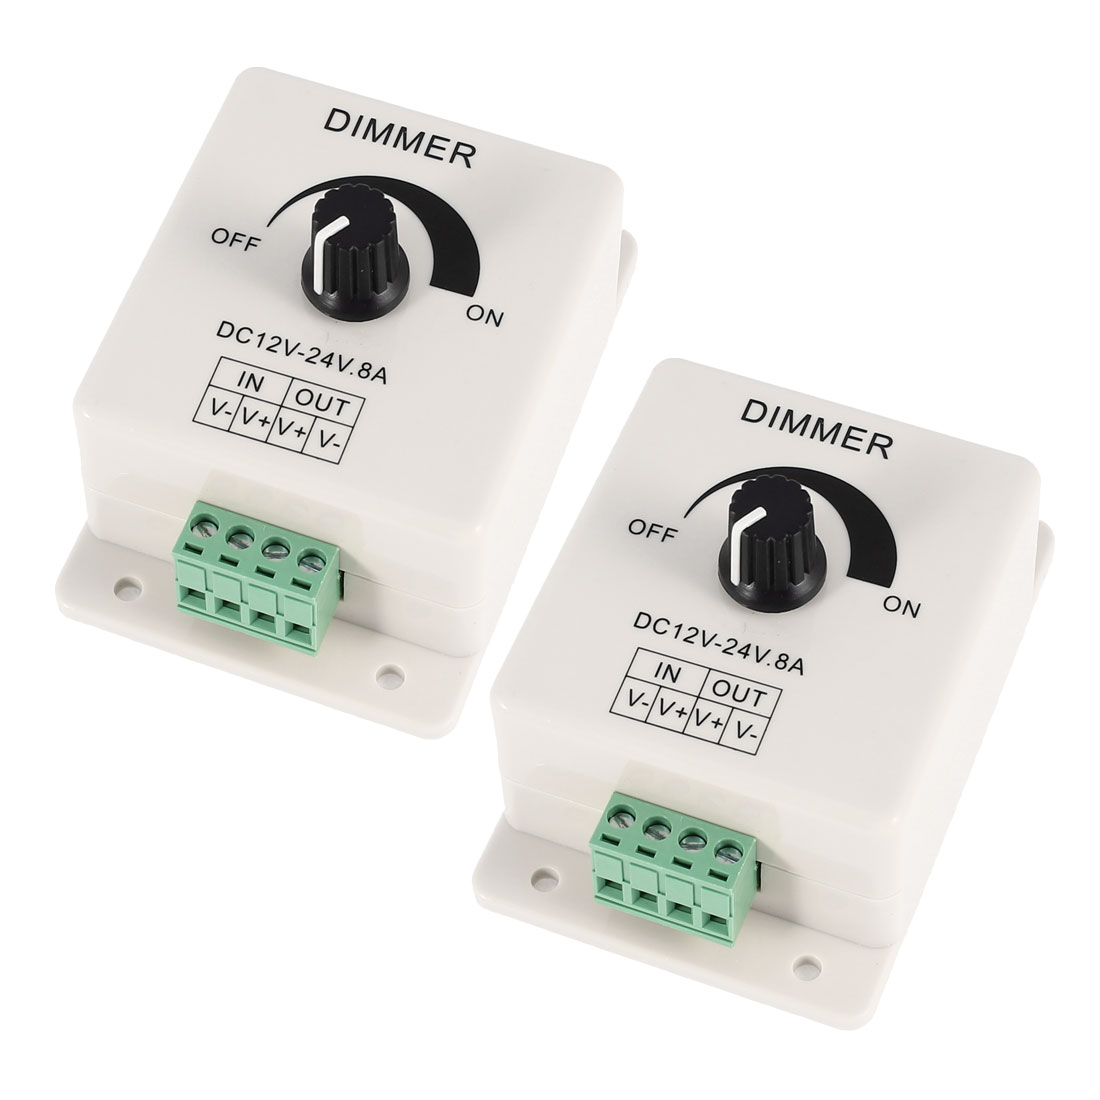 2 Pcs Single Color LED Light Brightness Control Dimmer Switch DC 12V-24V 8A